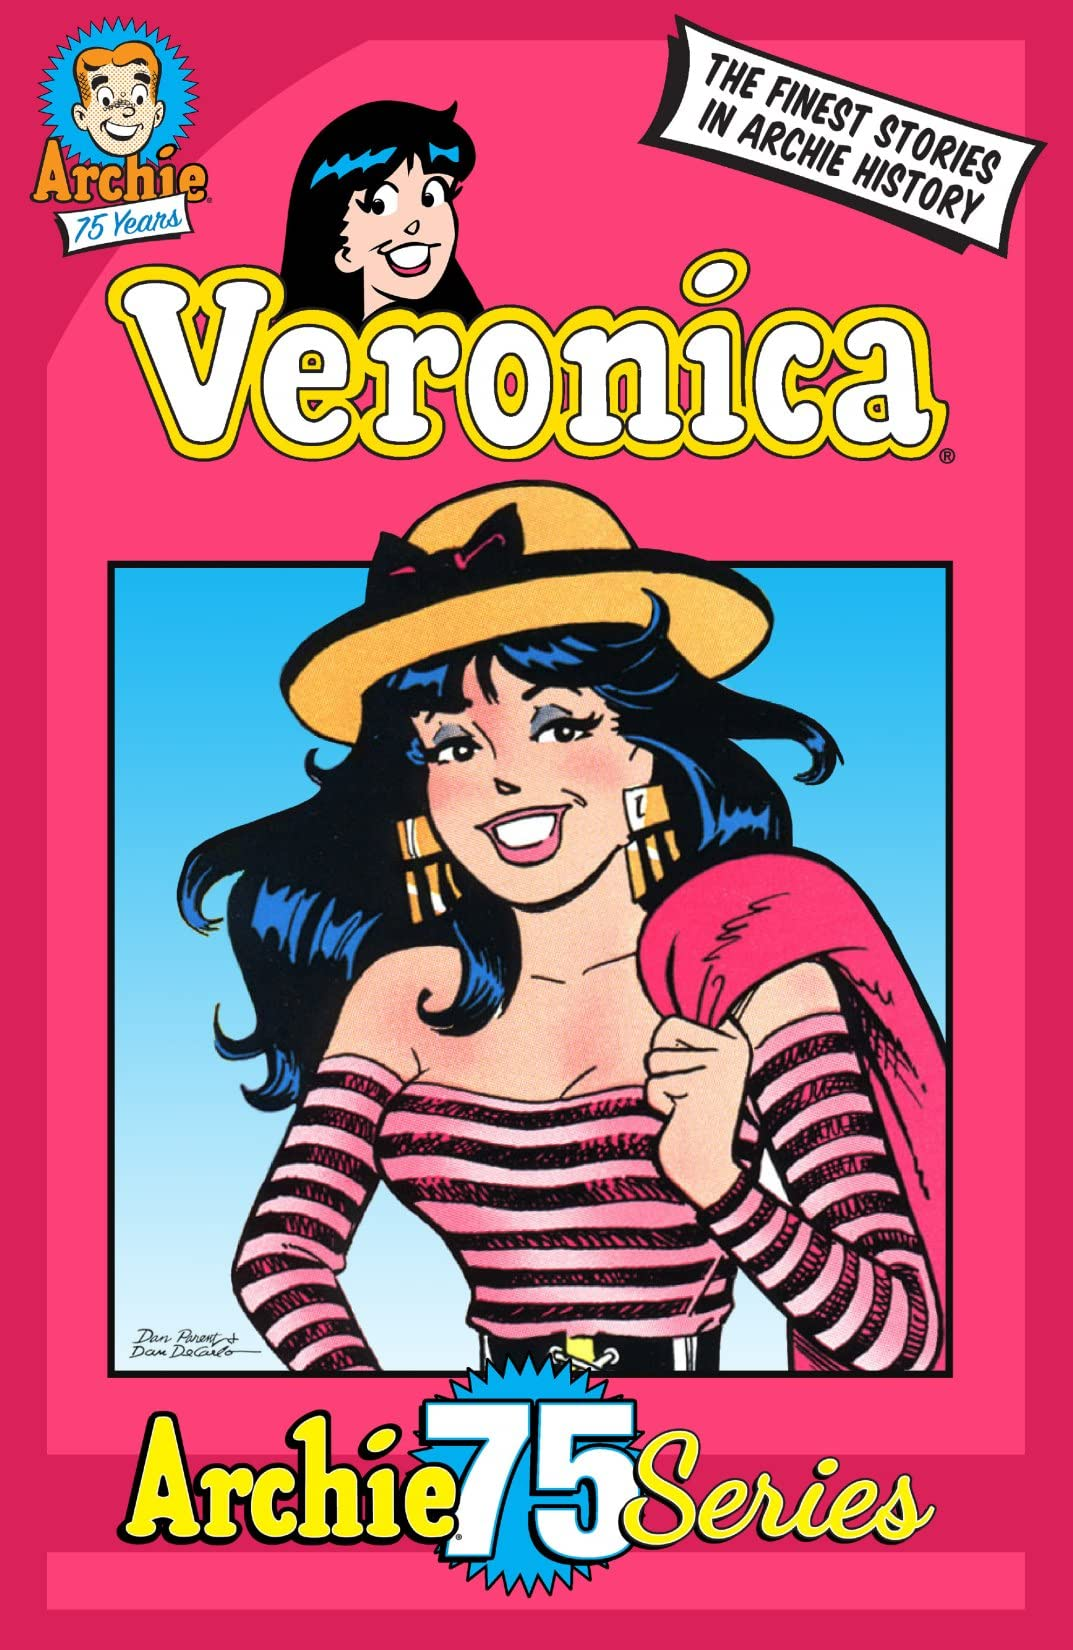 Archie 75 Series #15: Veronica